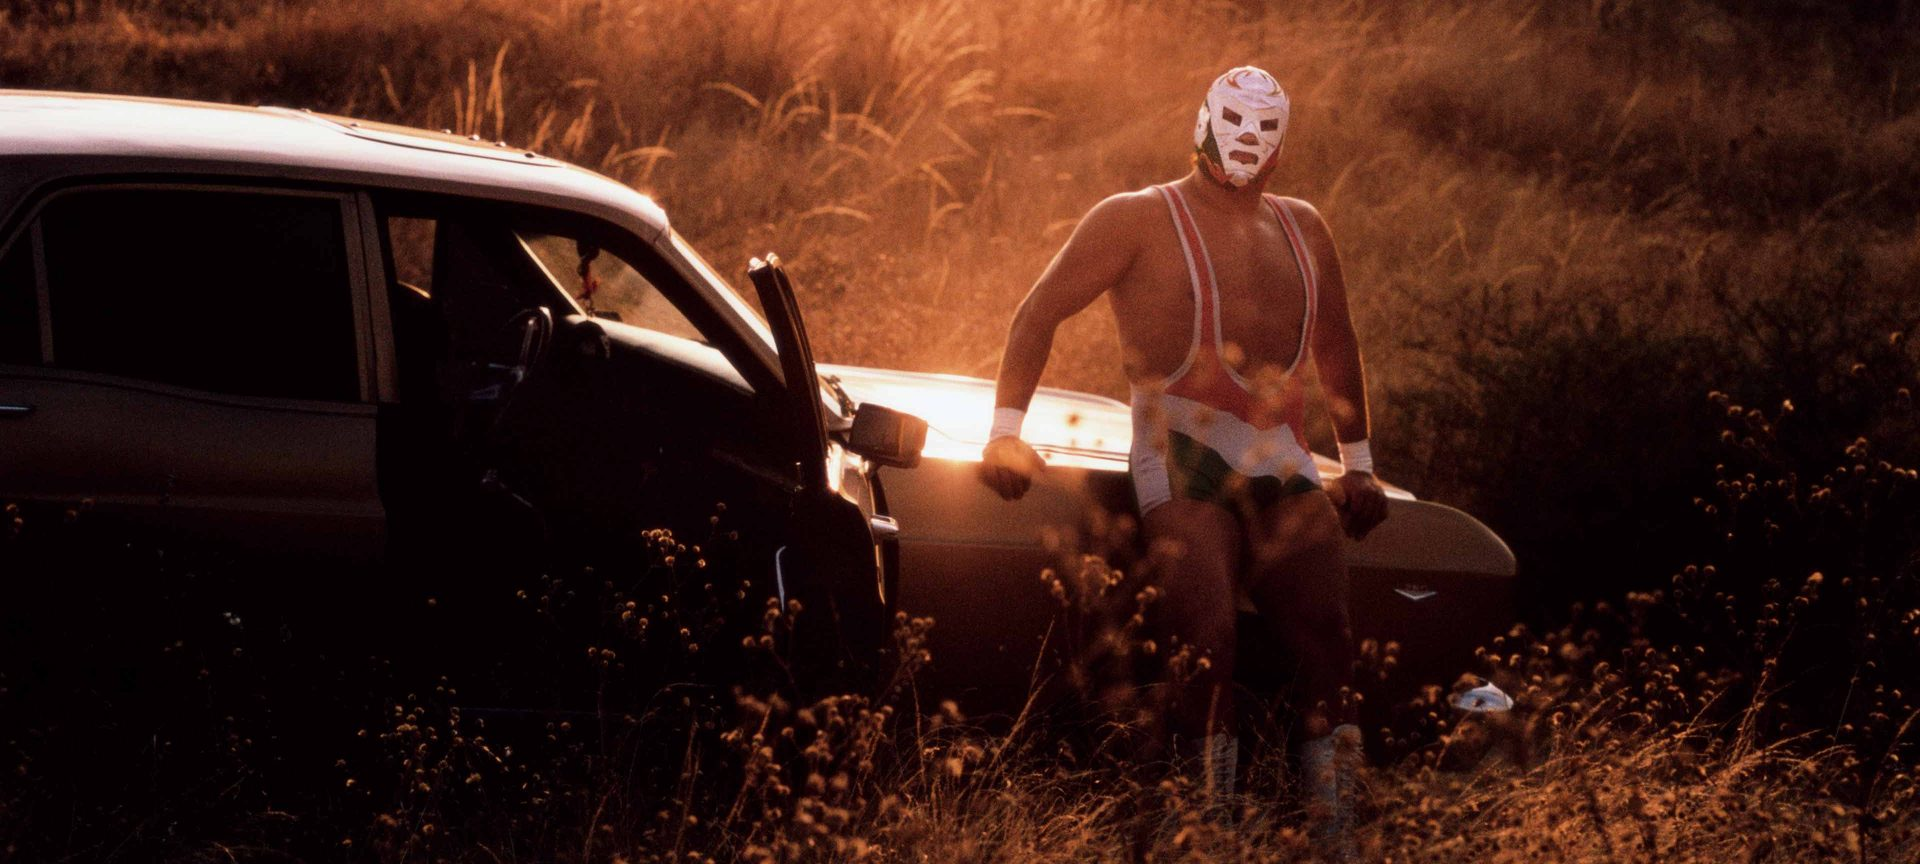 Mexican luchador Dr Wagner Jr poses by his car in front of a sunset